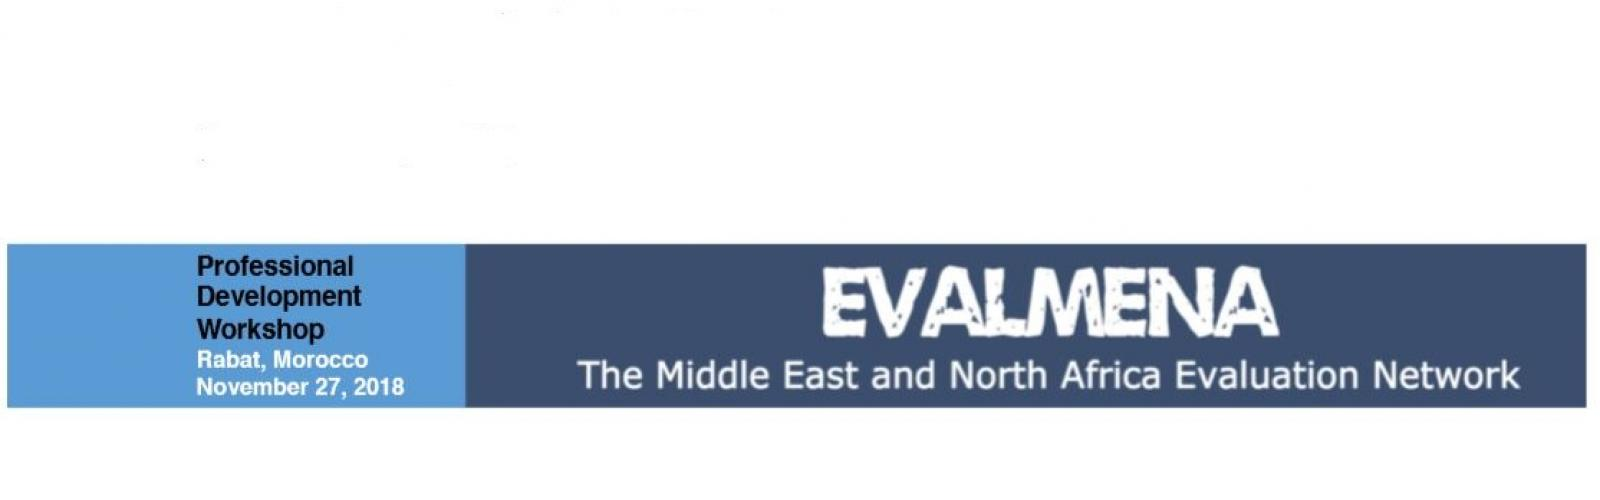 EvalMENA workshop